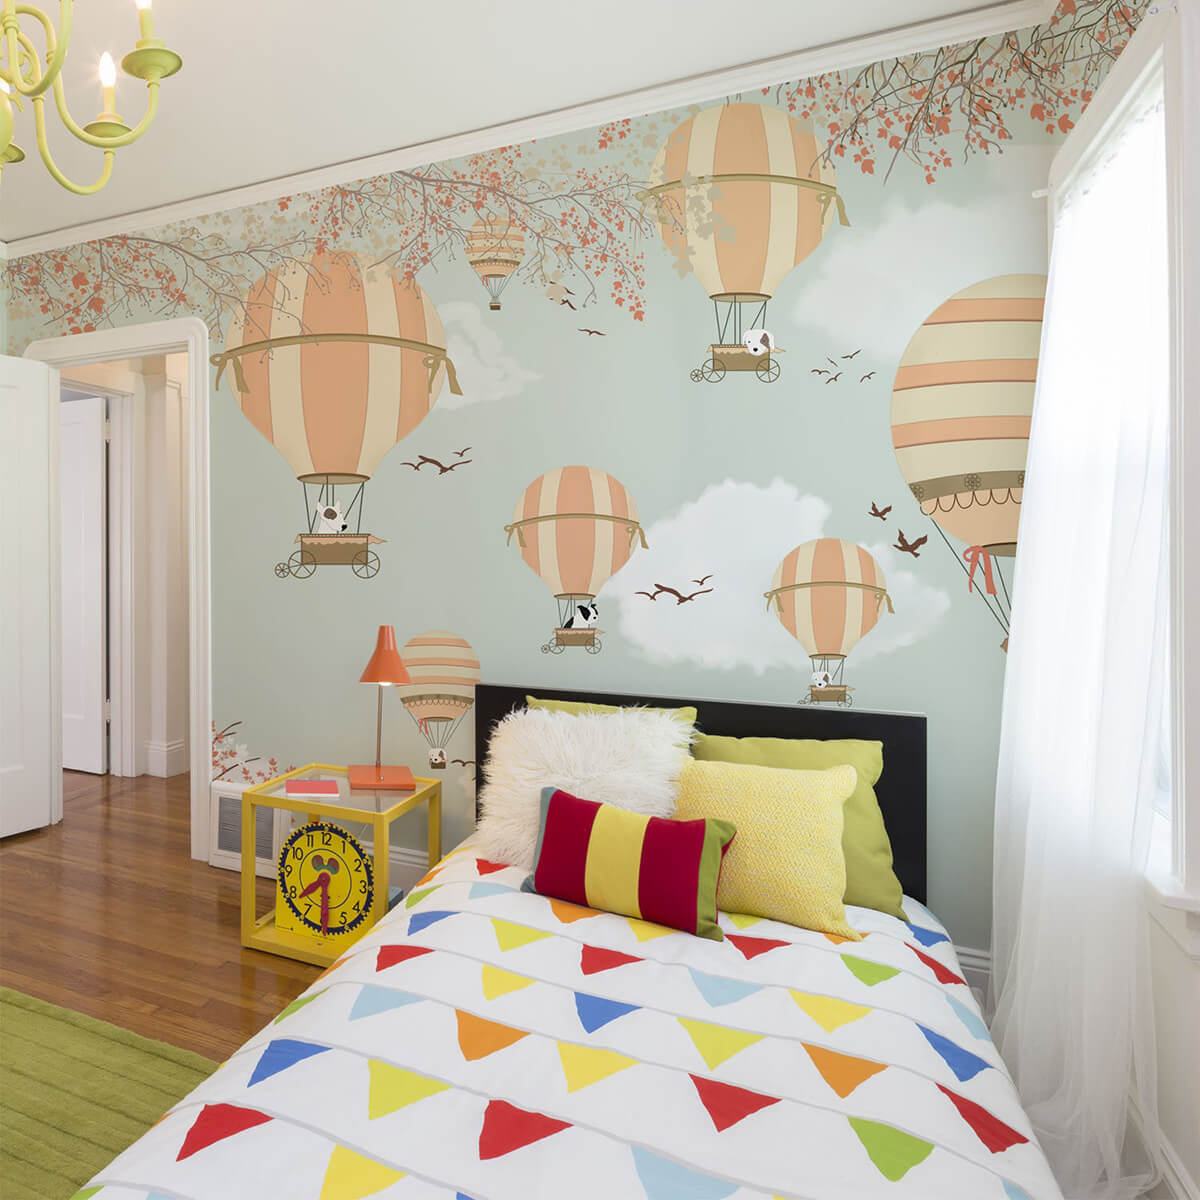 A Whimsical Hot Air Balloon Wall Mural